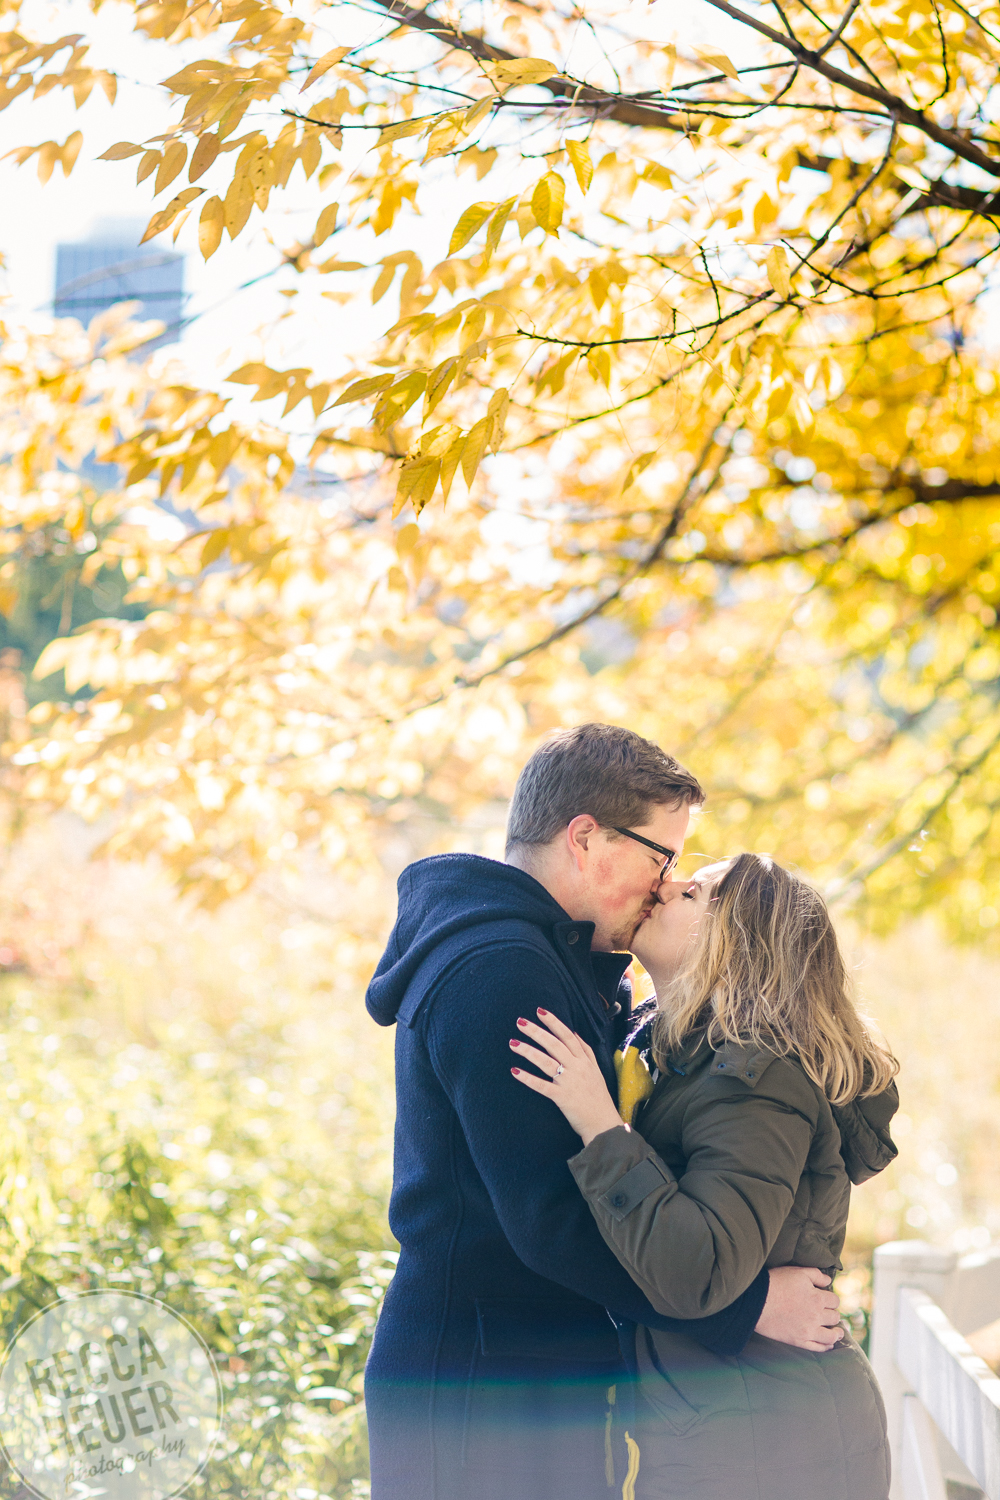 LincolnPark Proposal_Engagement Photography-020.jpg